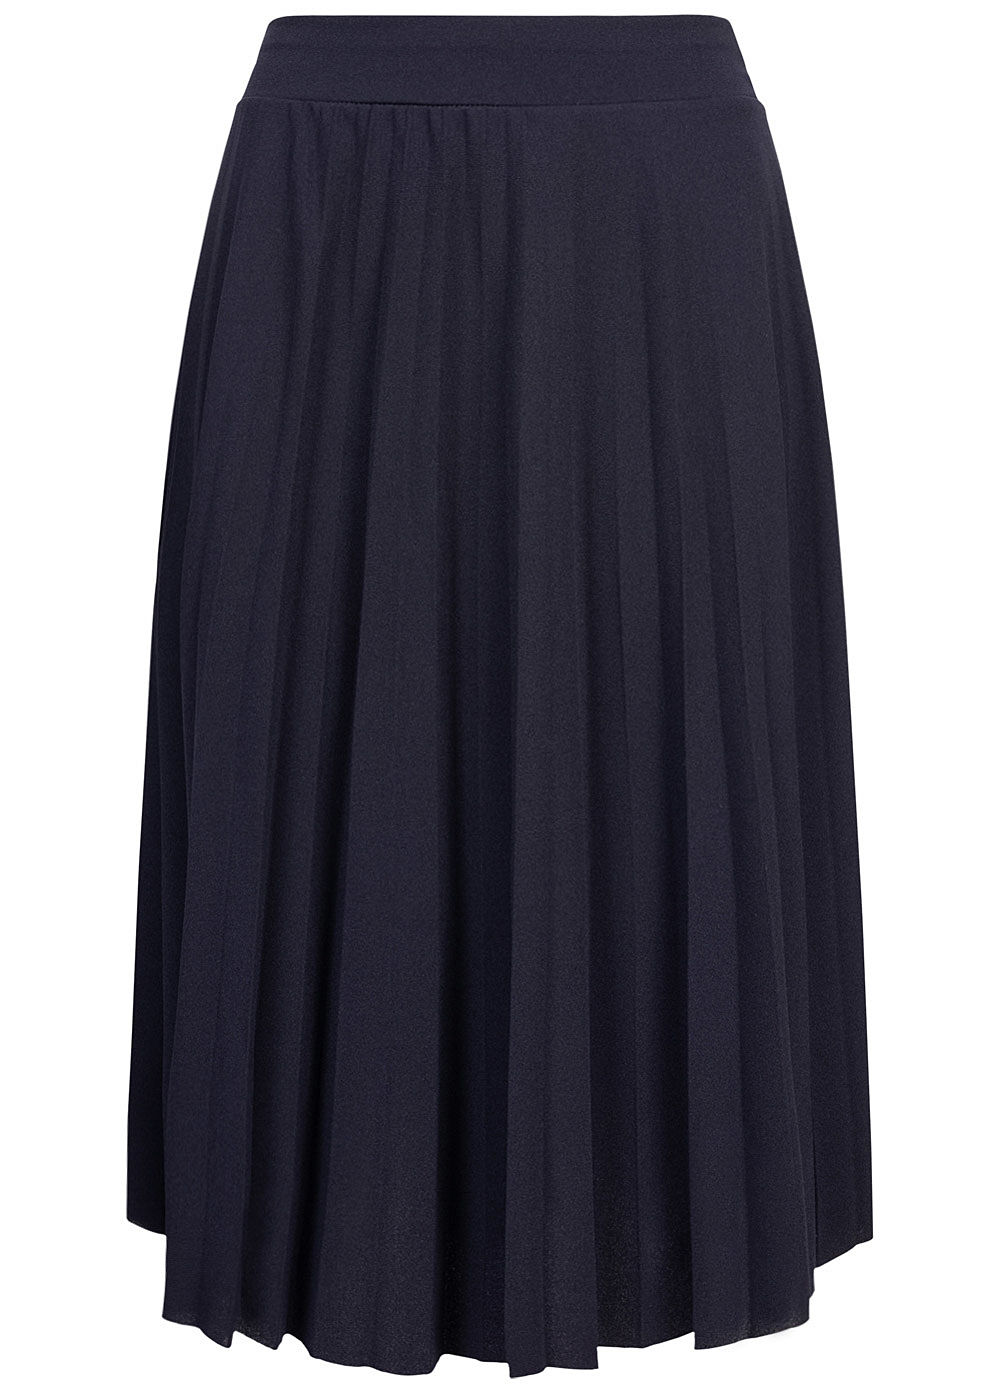 Styleboom Fashion Damen Plissee Midi Falten Rock unicolor navy blau - Art.-Nr.: 20086380